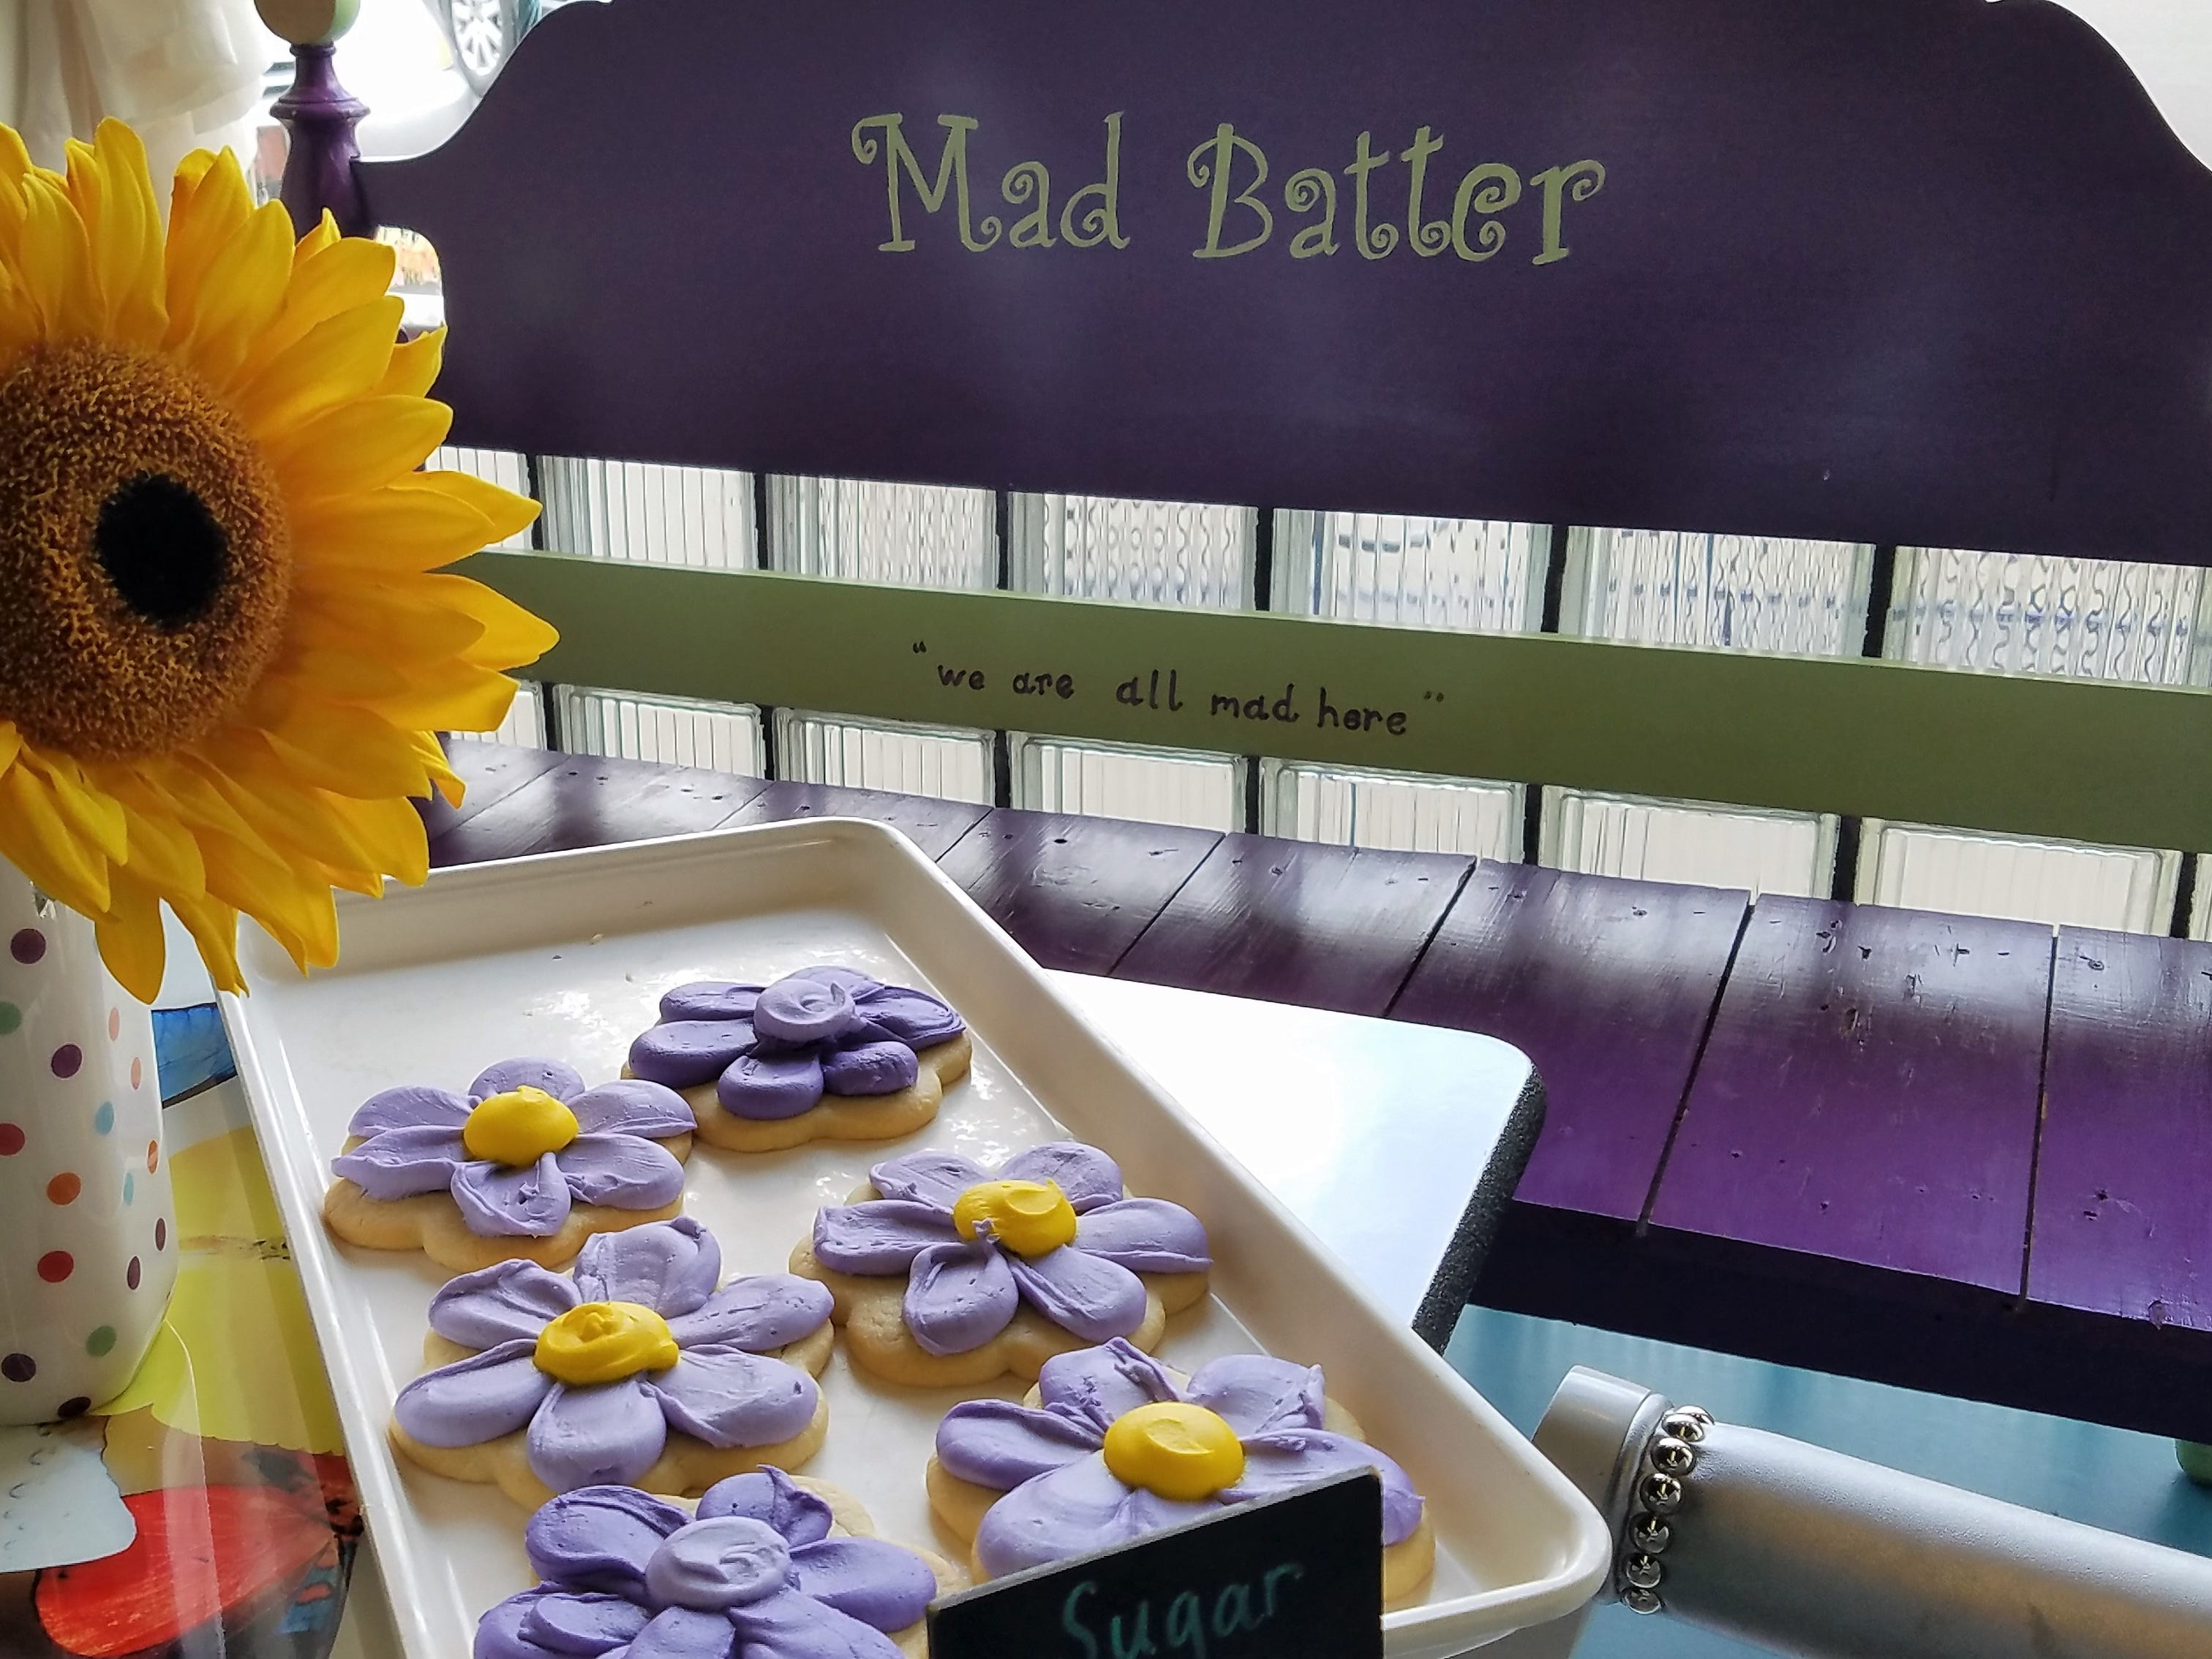 Iced cookies at The Mad Batter bakery in Jasper.